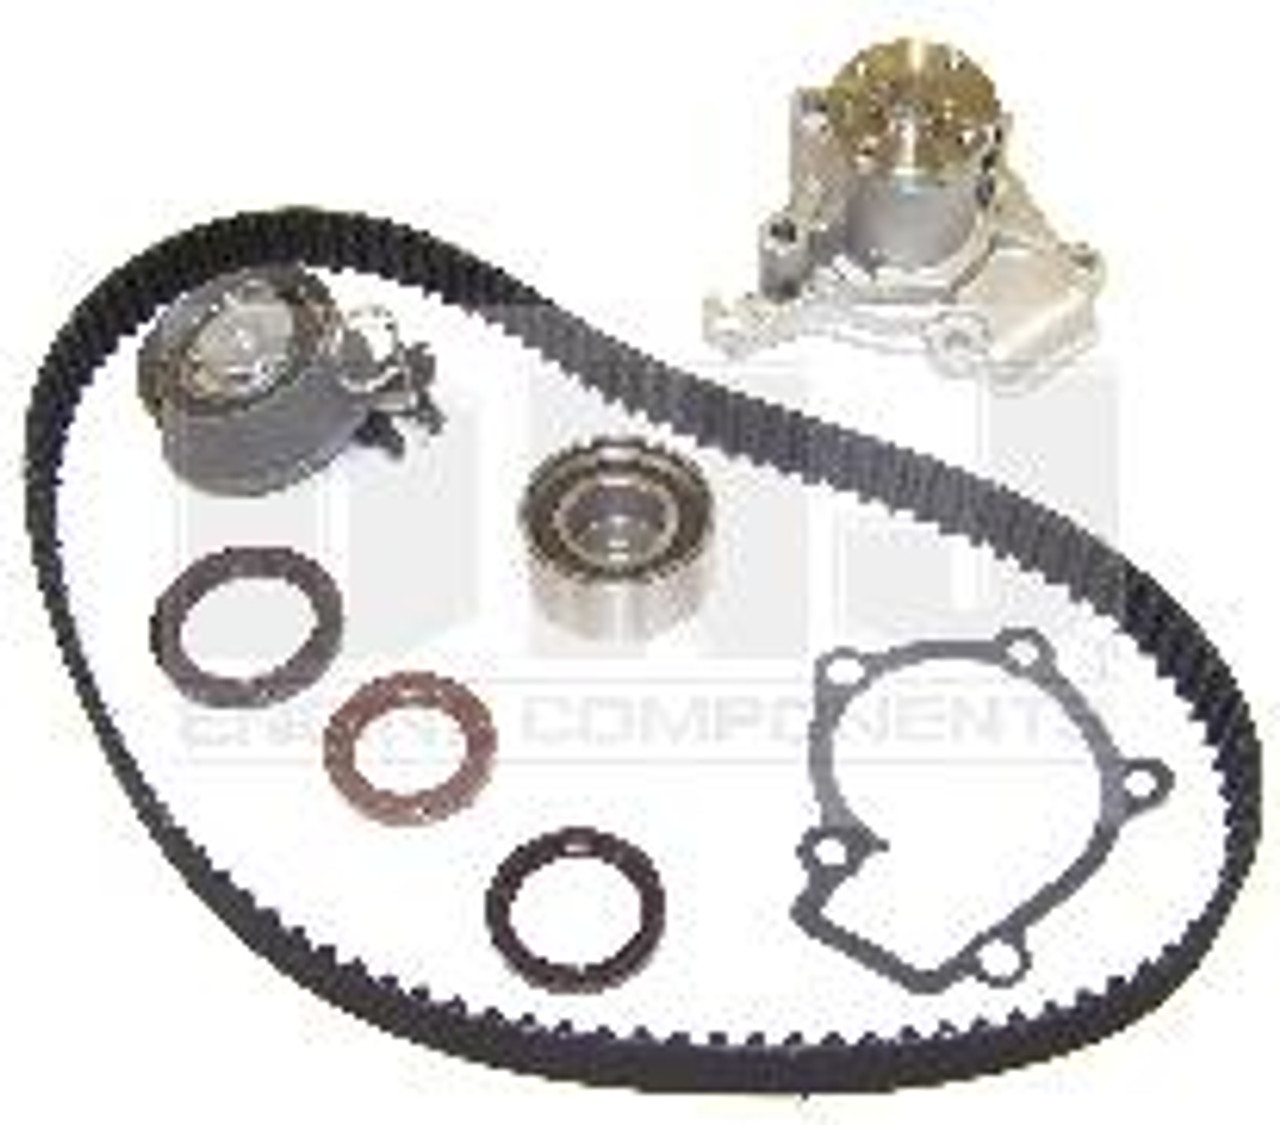 2008 Hyundai Tucson 2.0L Engine Timing Belt Kit with Water Pump TBK120WP -6 | Hyundai Timing Belt |  | Engine Parts Only